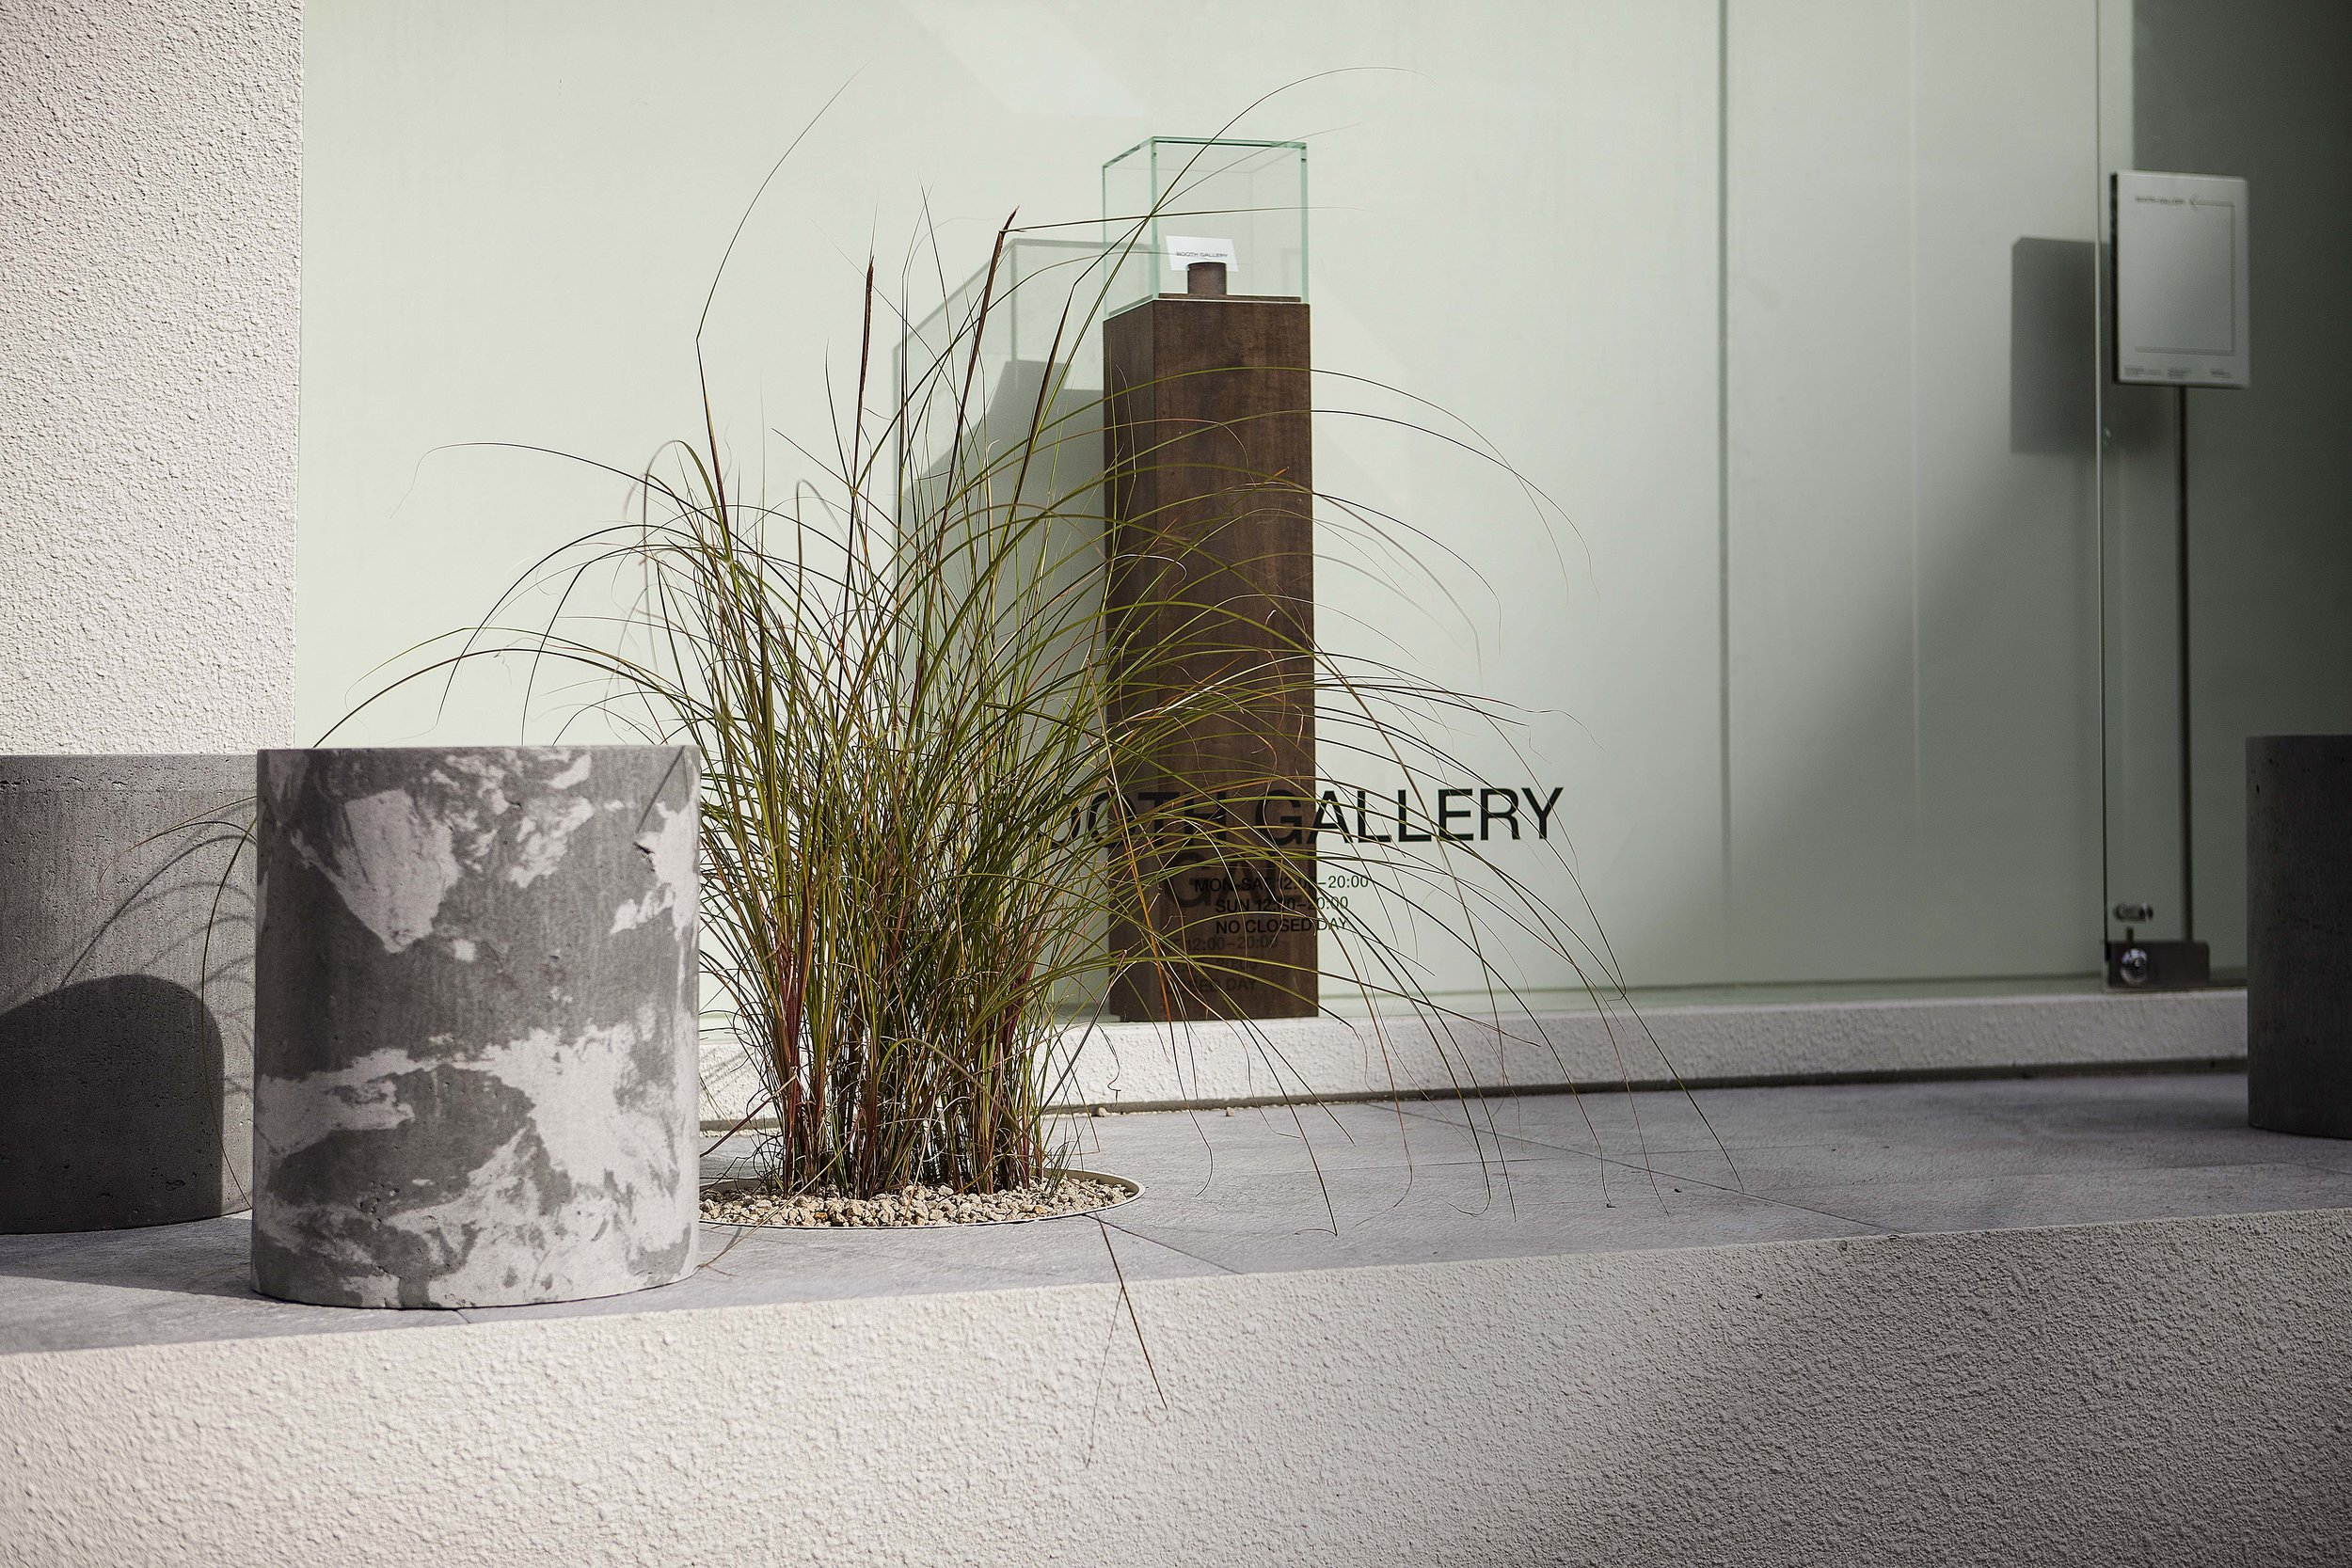 Booth Gallery